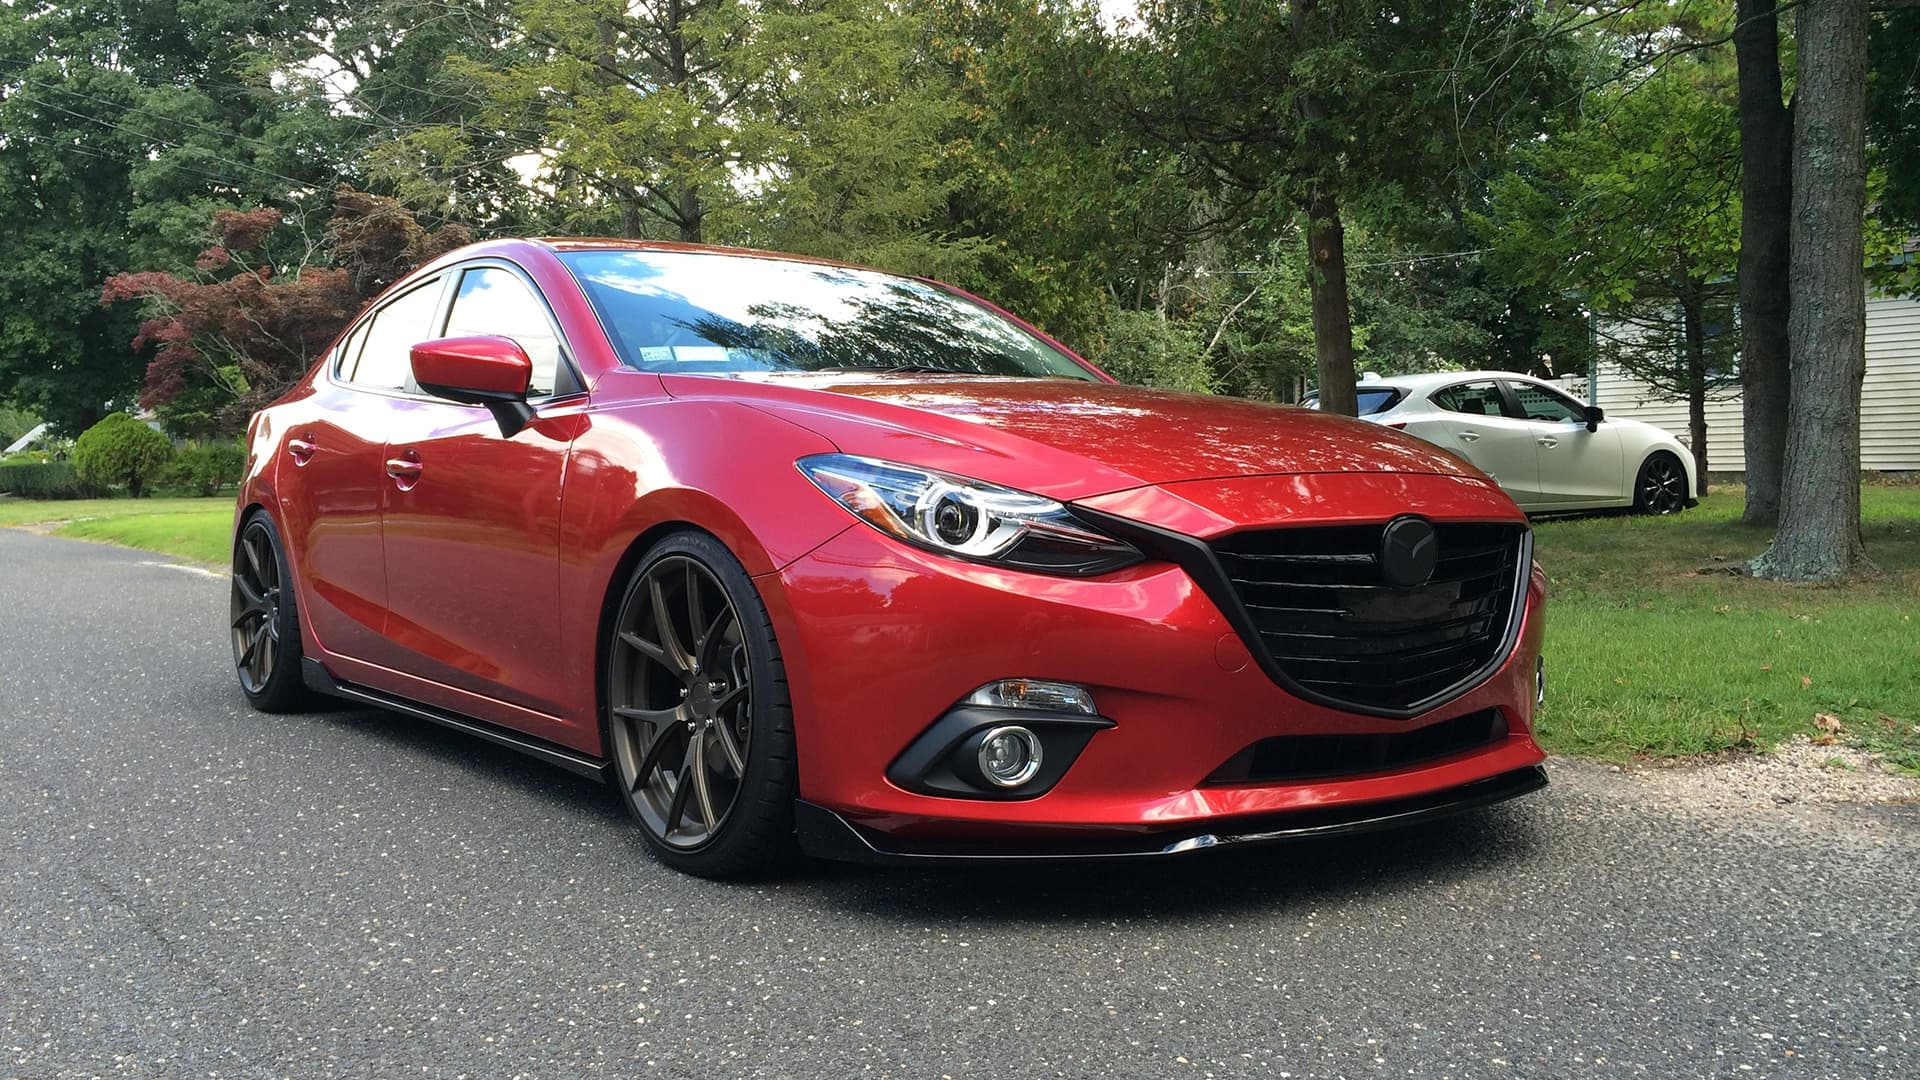 mazda 3 hatchback 2016 share the knownledge. Black Bedroom Furniture Sets. Home Design Ideas